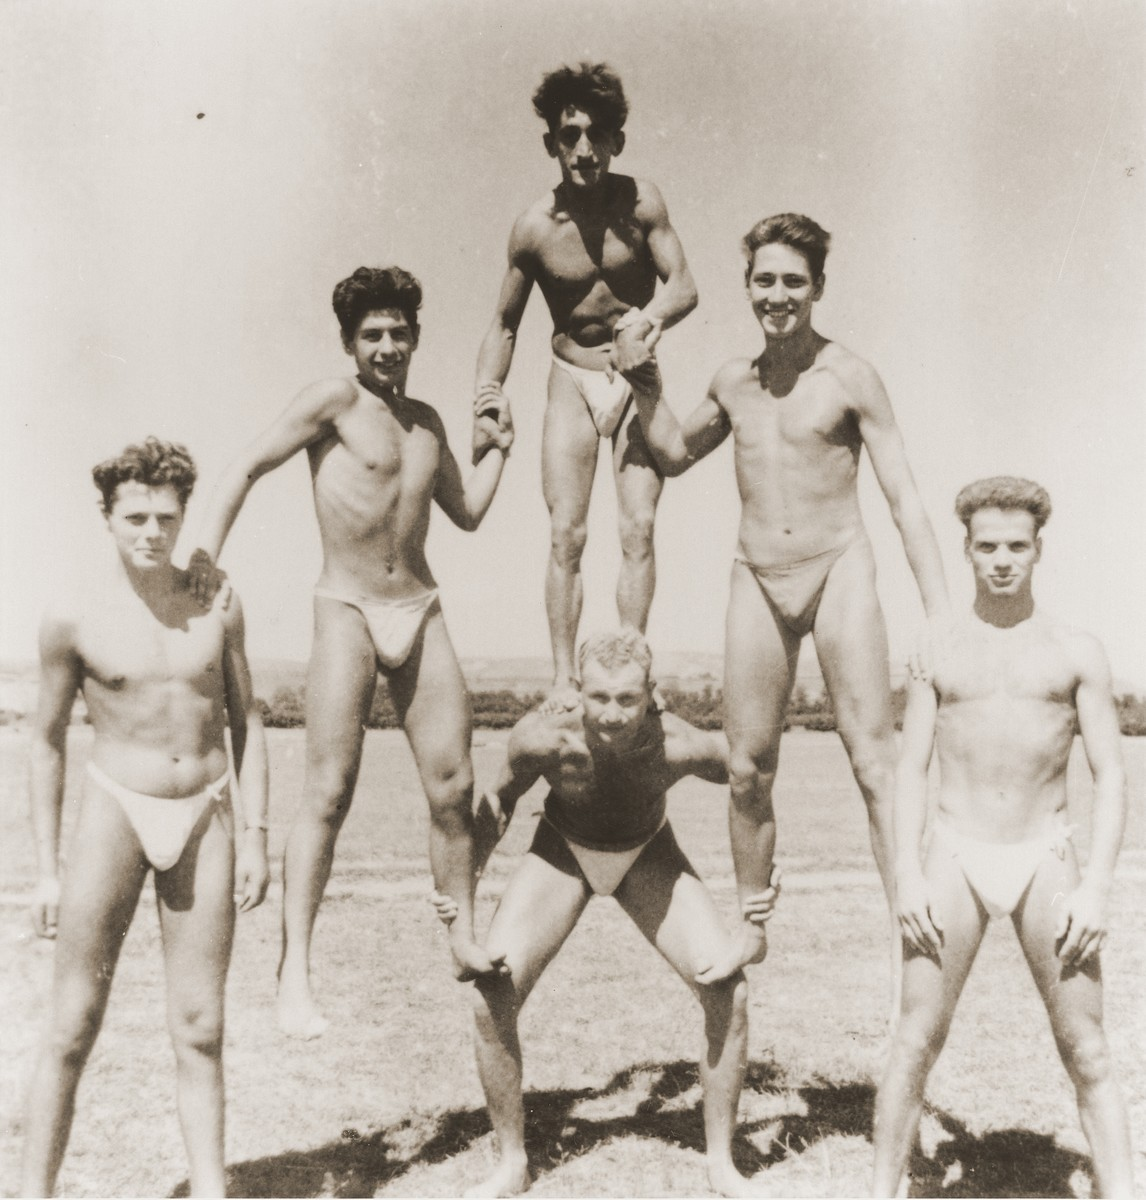 Members of the Hashomer Hatzair Zionist youth movement, who were part of the Kladovo transport, build a human pyramid on the banks of the Danube.